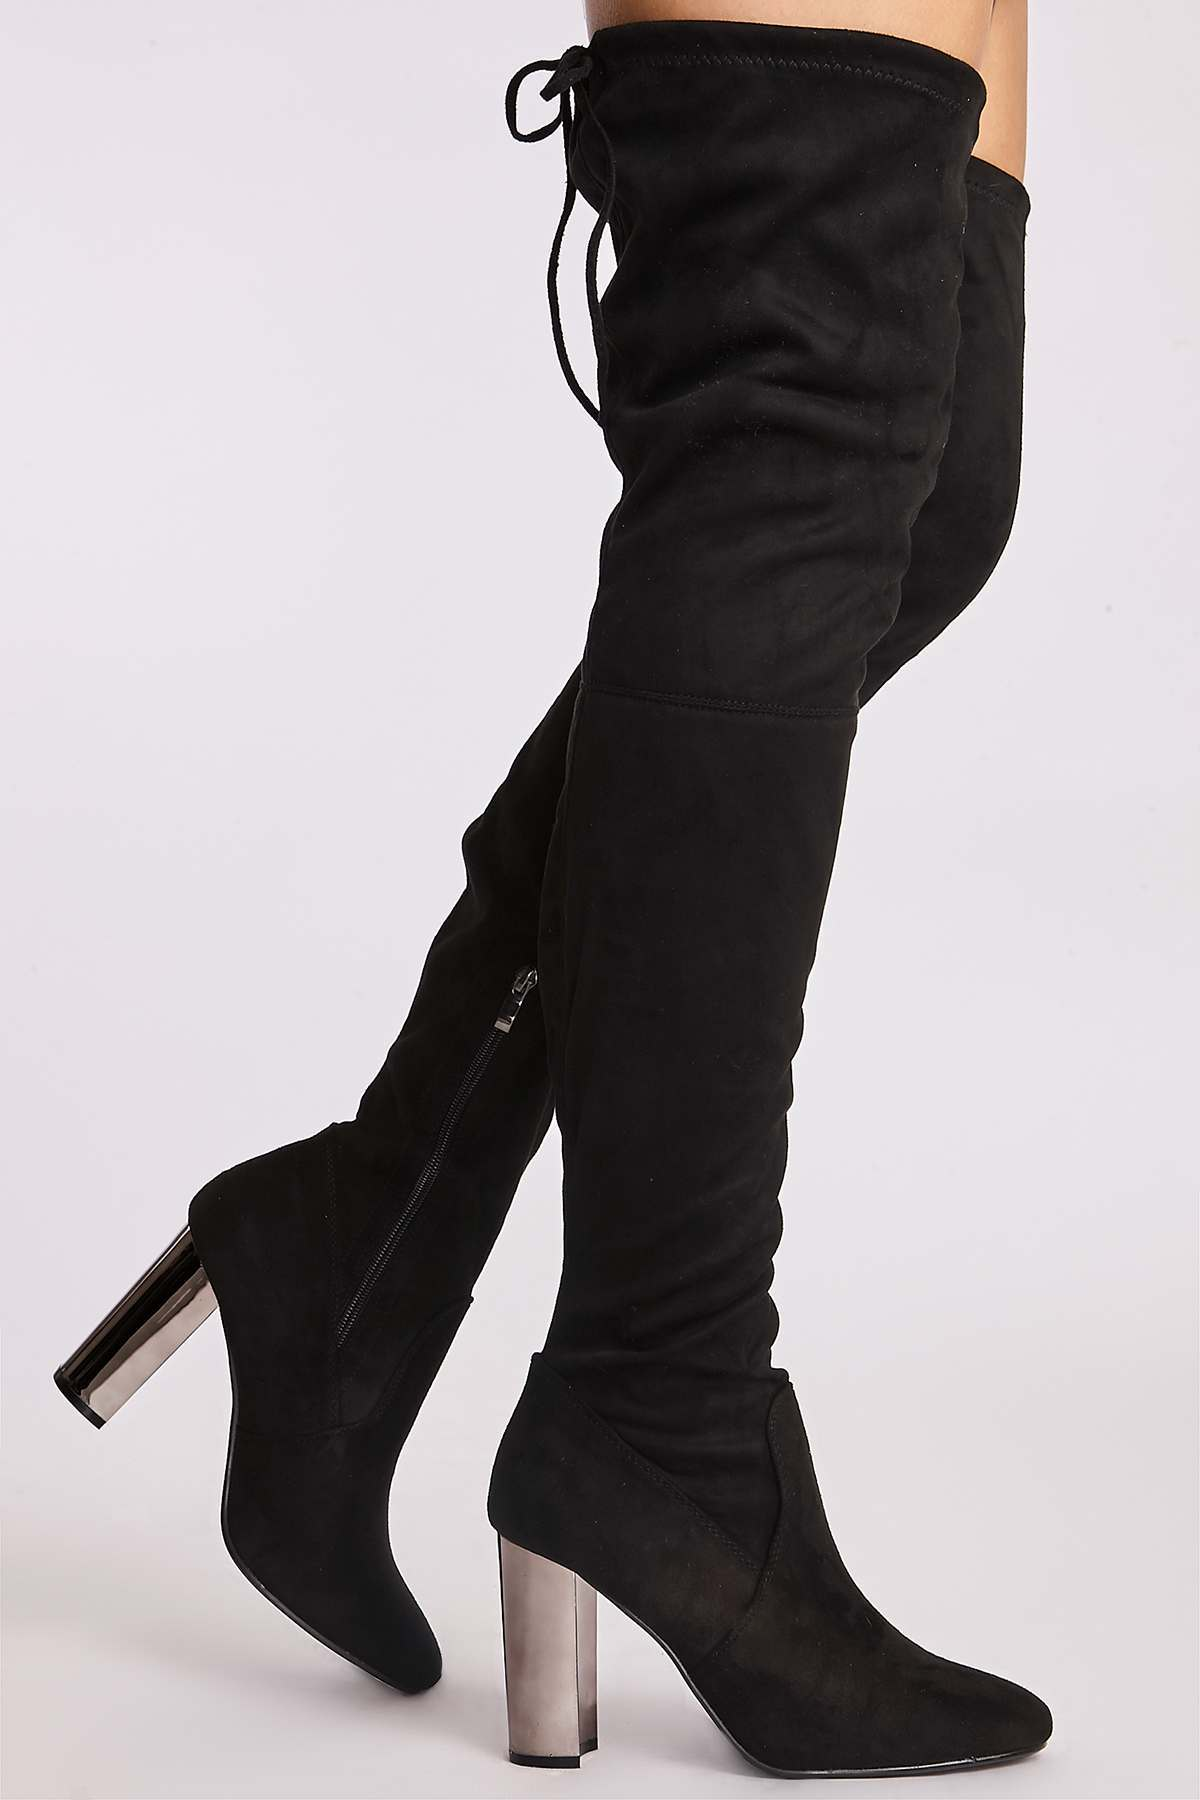 Black Boots  Natasia Black Faux Suede Chrome Heel Thigh High Boots